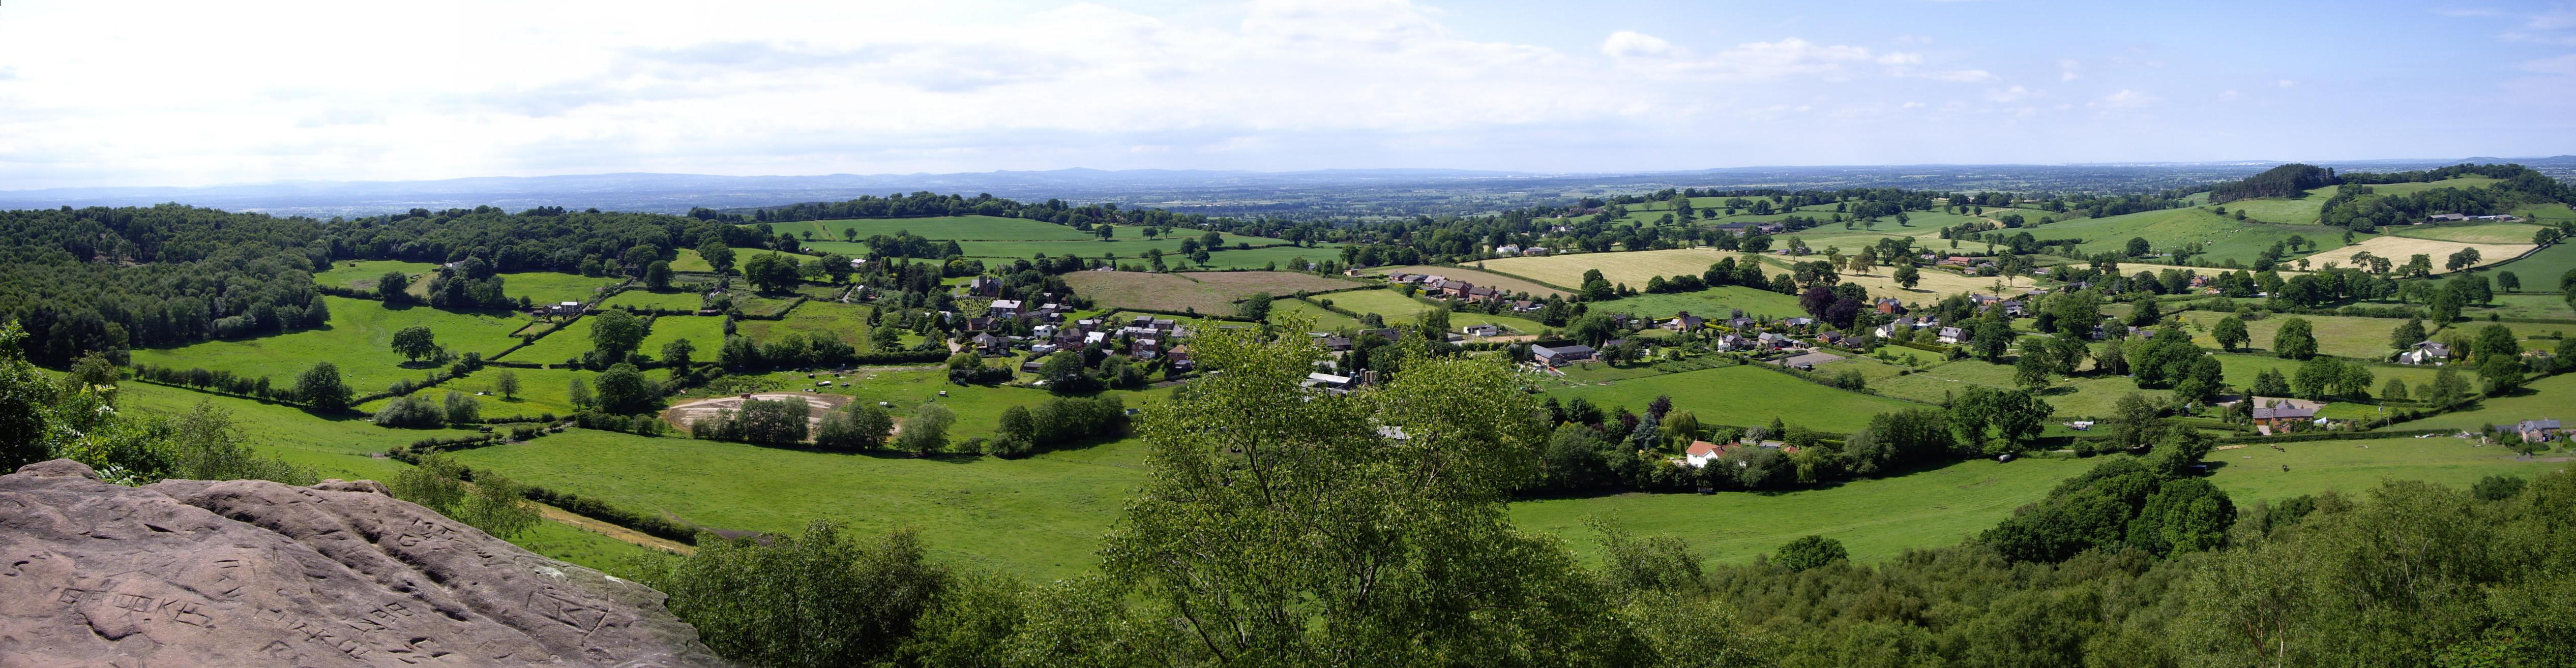 Broxton from Bickerton Hill 2008.jpg